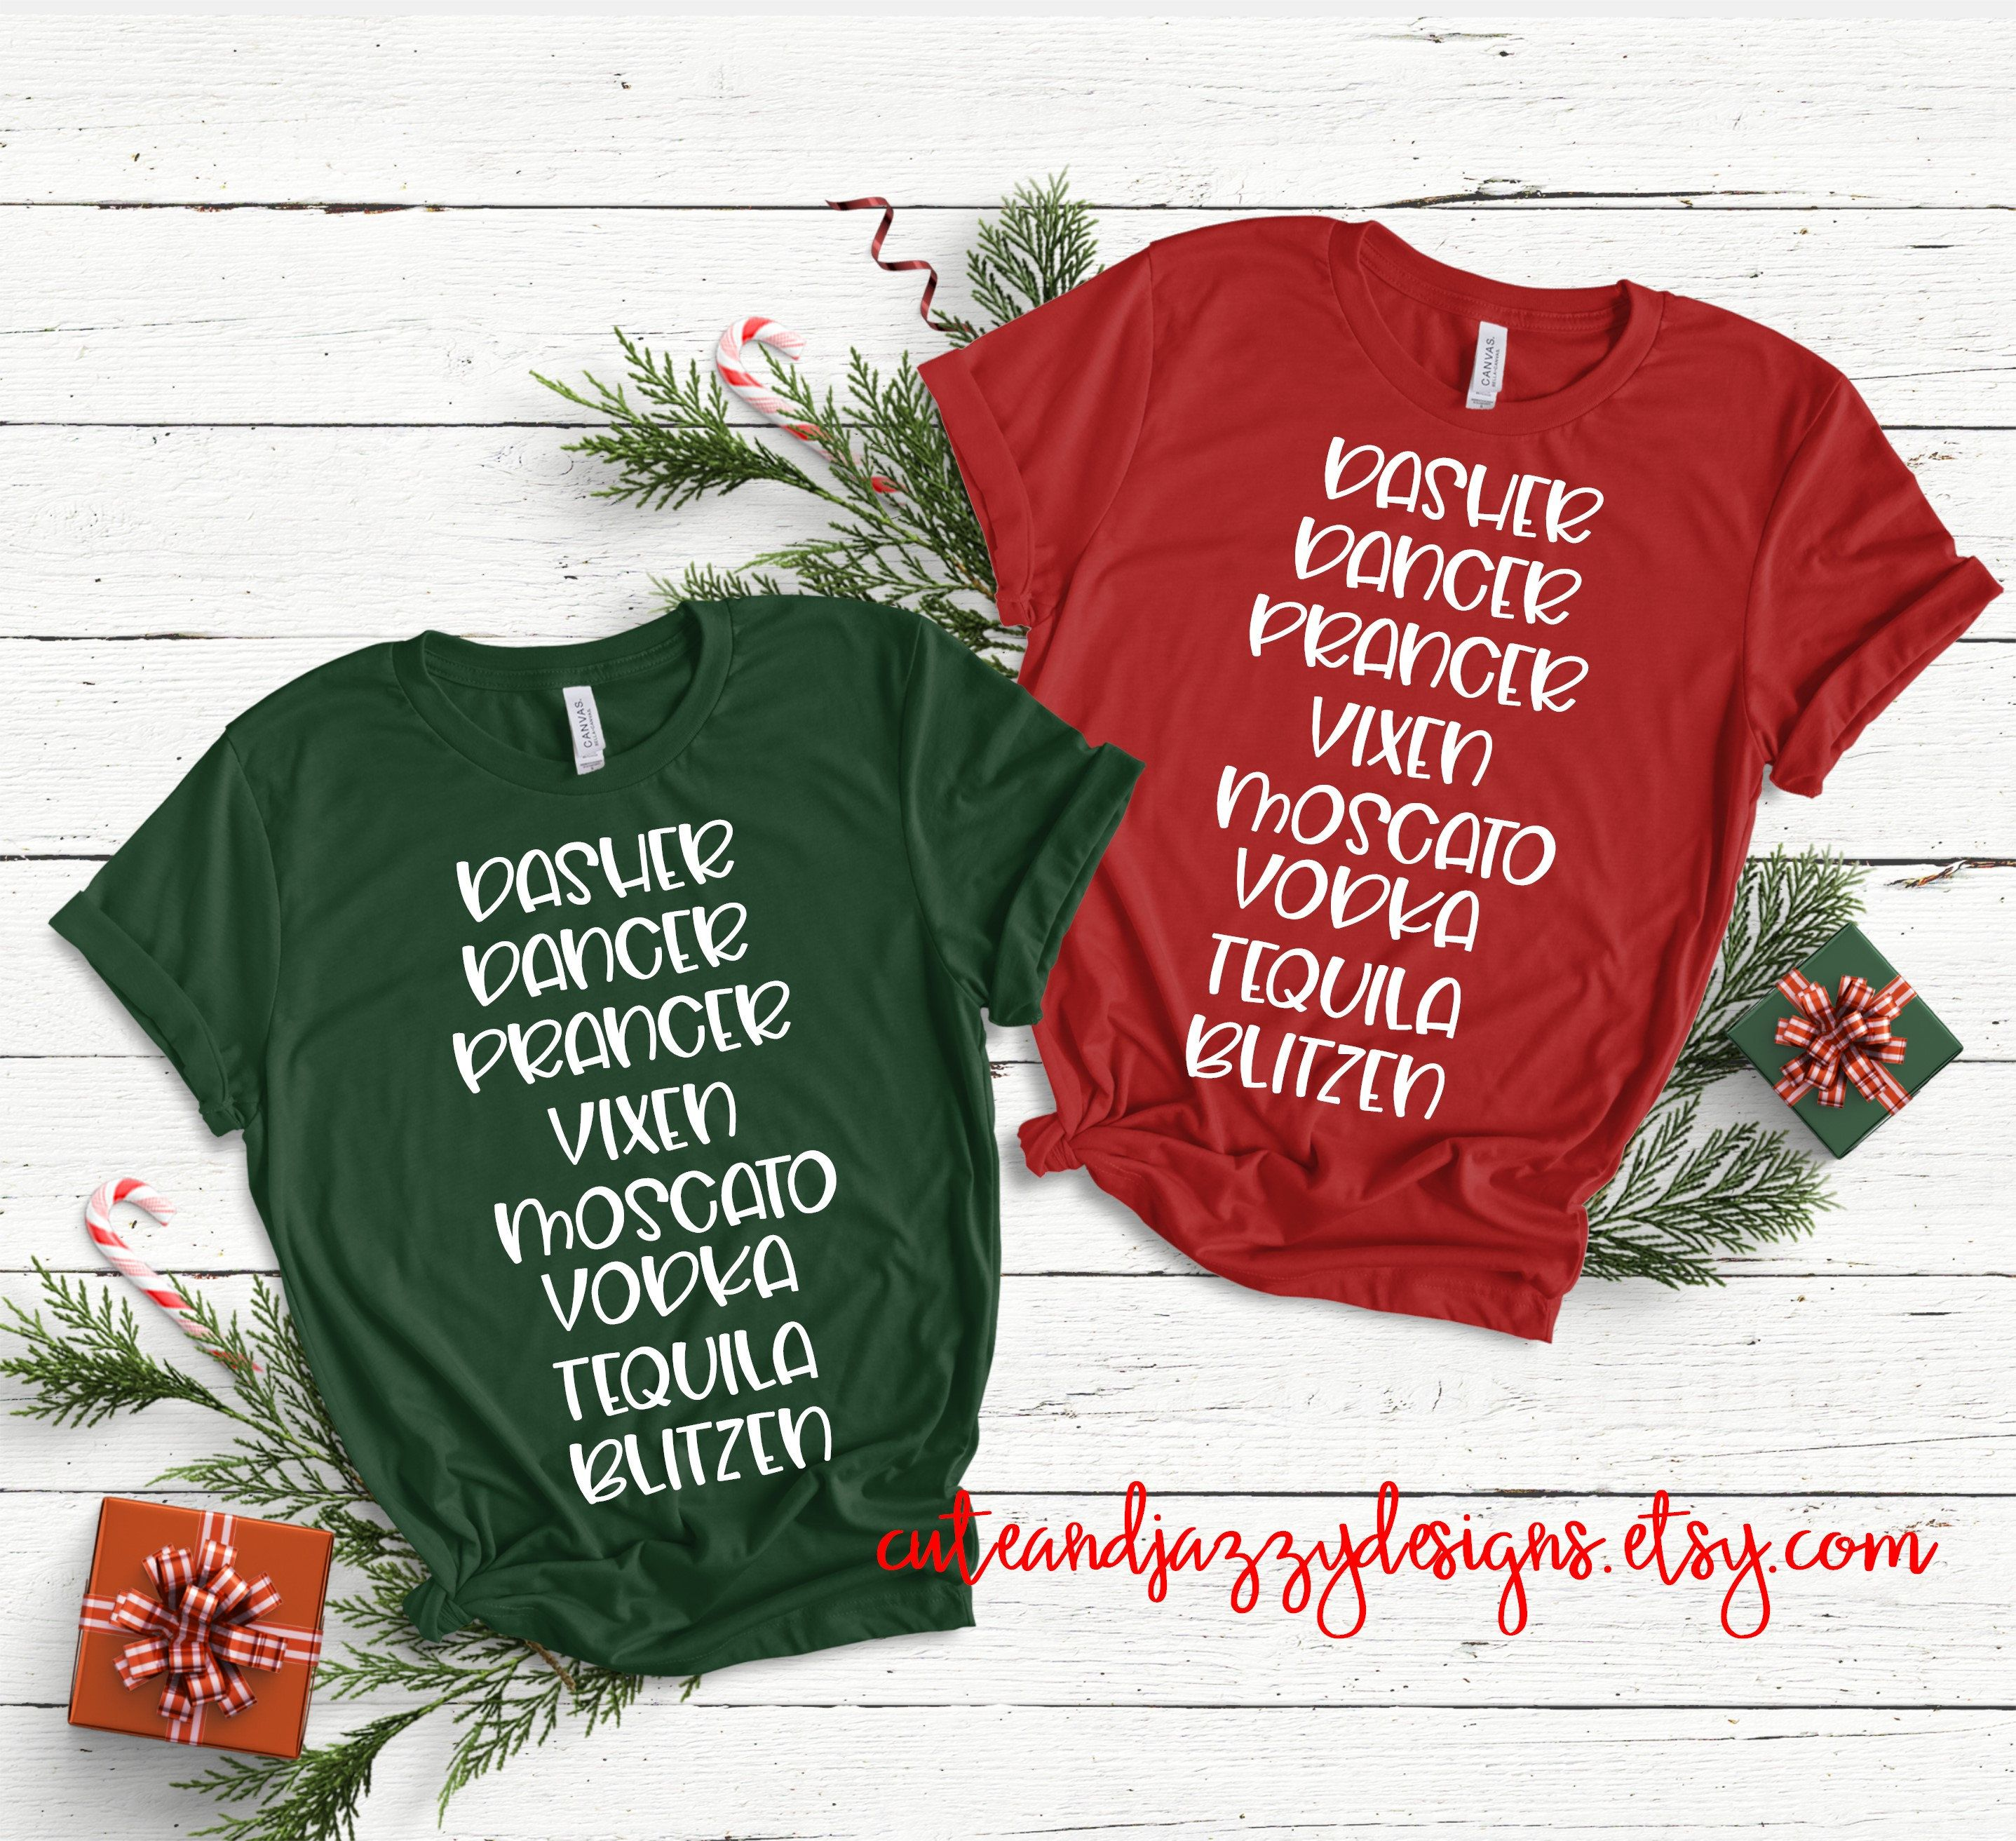 Reindeer Alcohol Names Rum Vodka Tequila Christmas T Shirt Etsy In 2020 Matching Christmas Shirts Christmas Tshirts Christmas Shirts